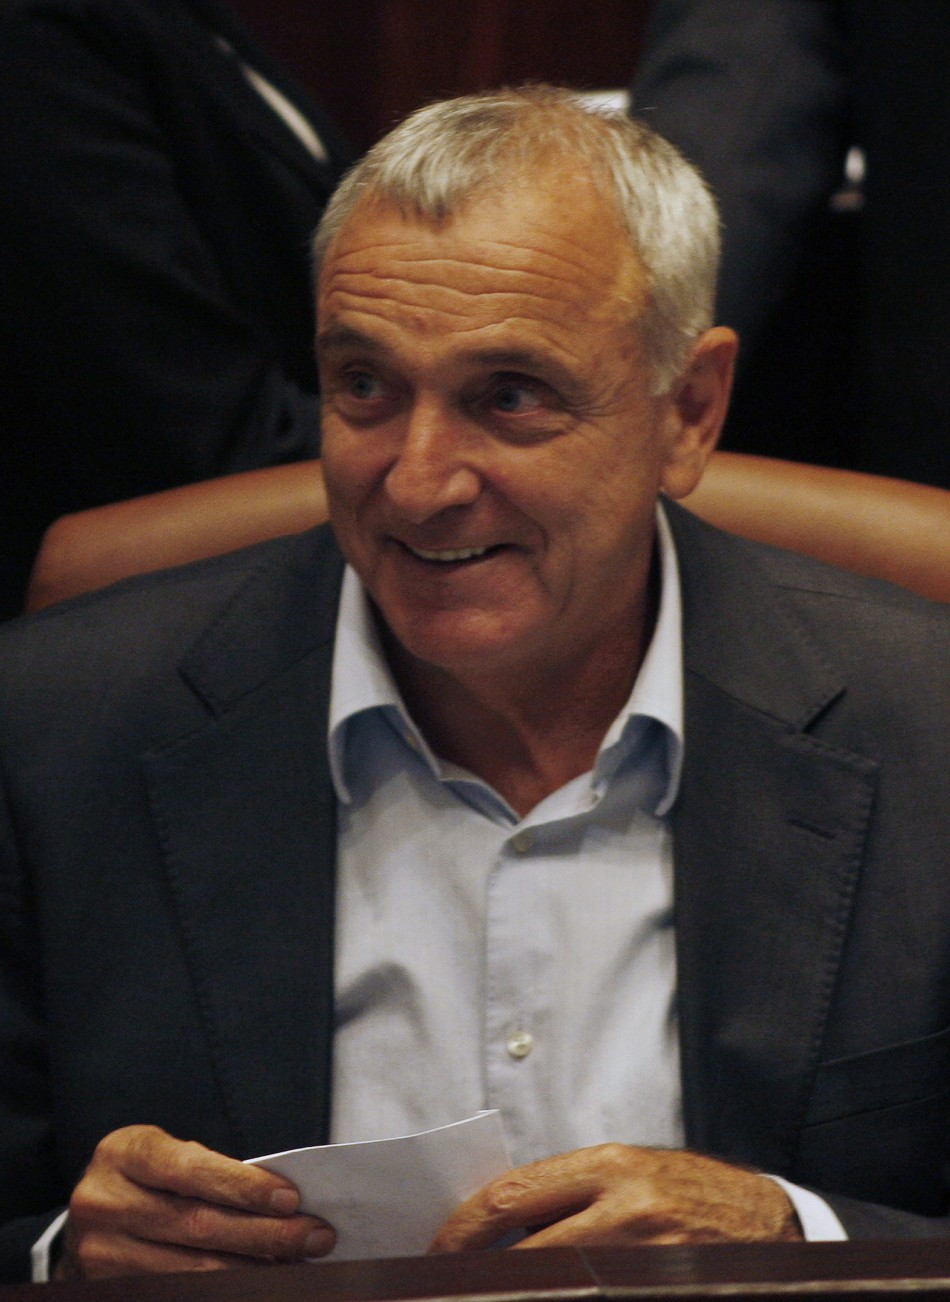 Israel's Internal Security Minister Aharonovitch attends session of Knesset in Jerusalem